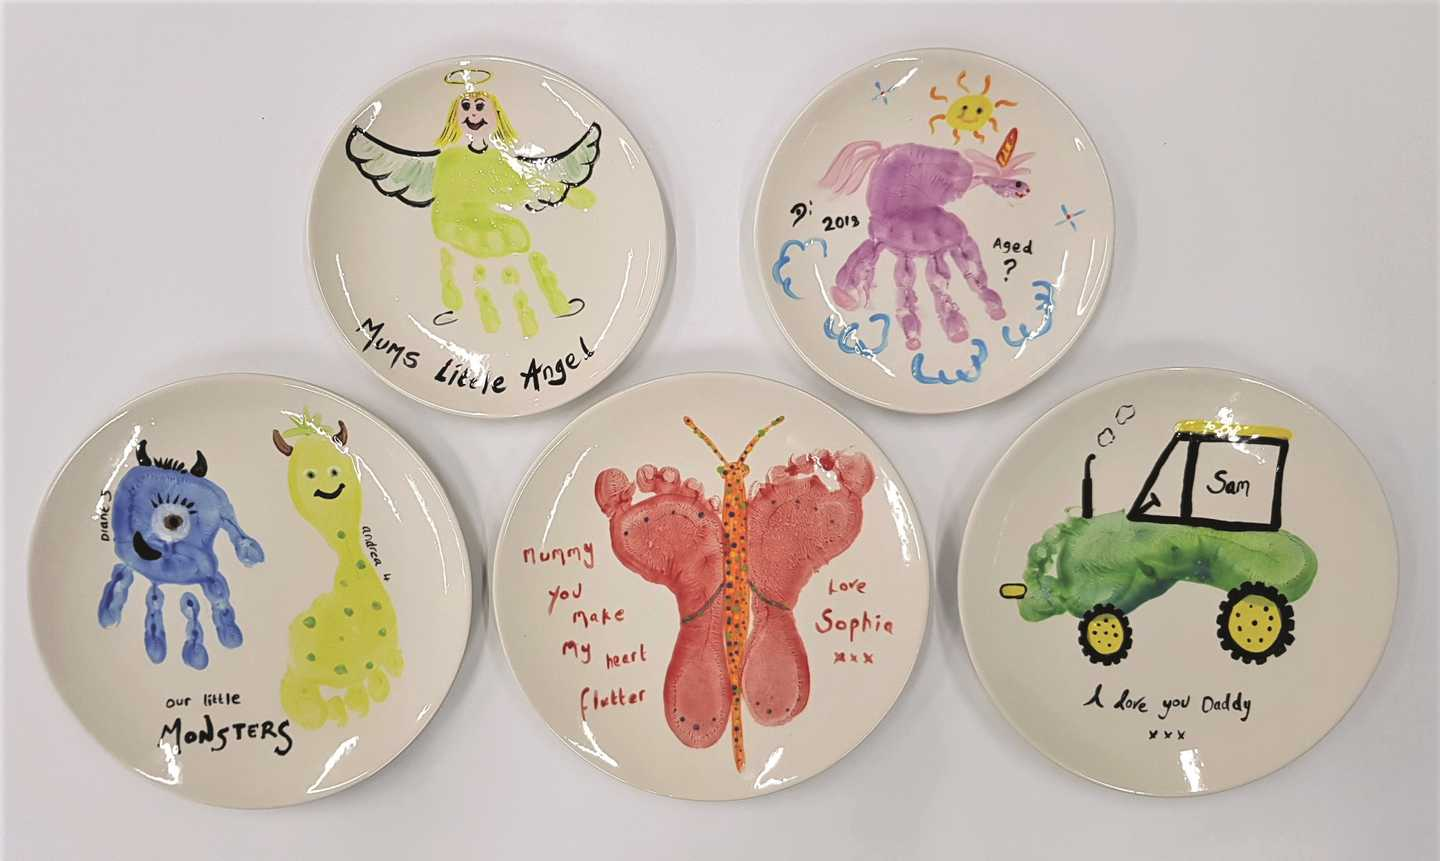 Decorative ceramic plates with painted hand and foot prints